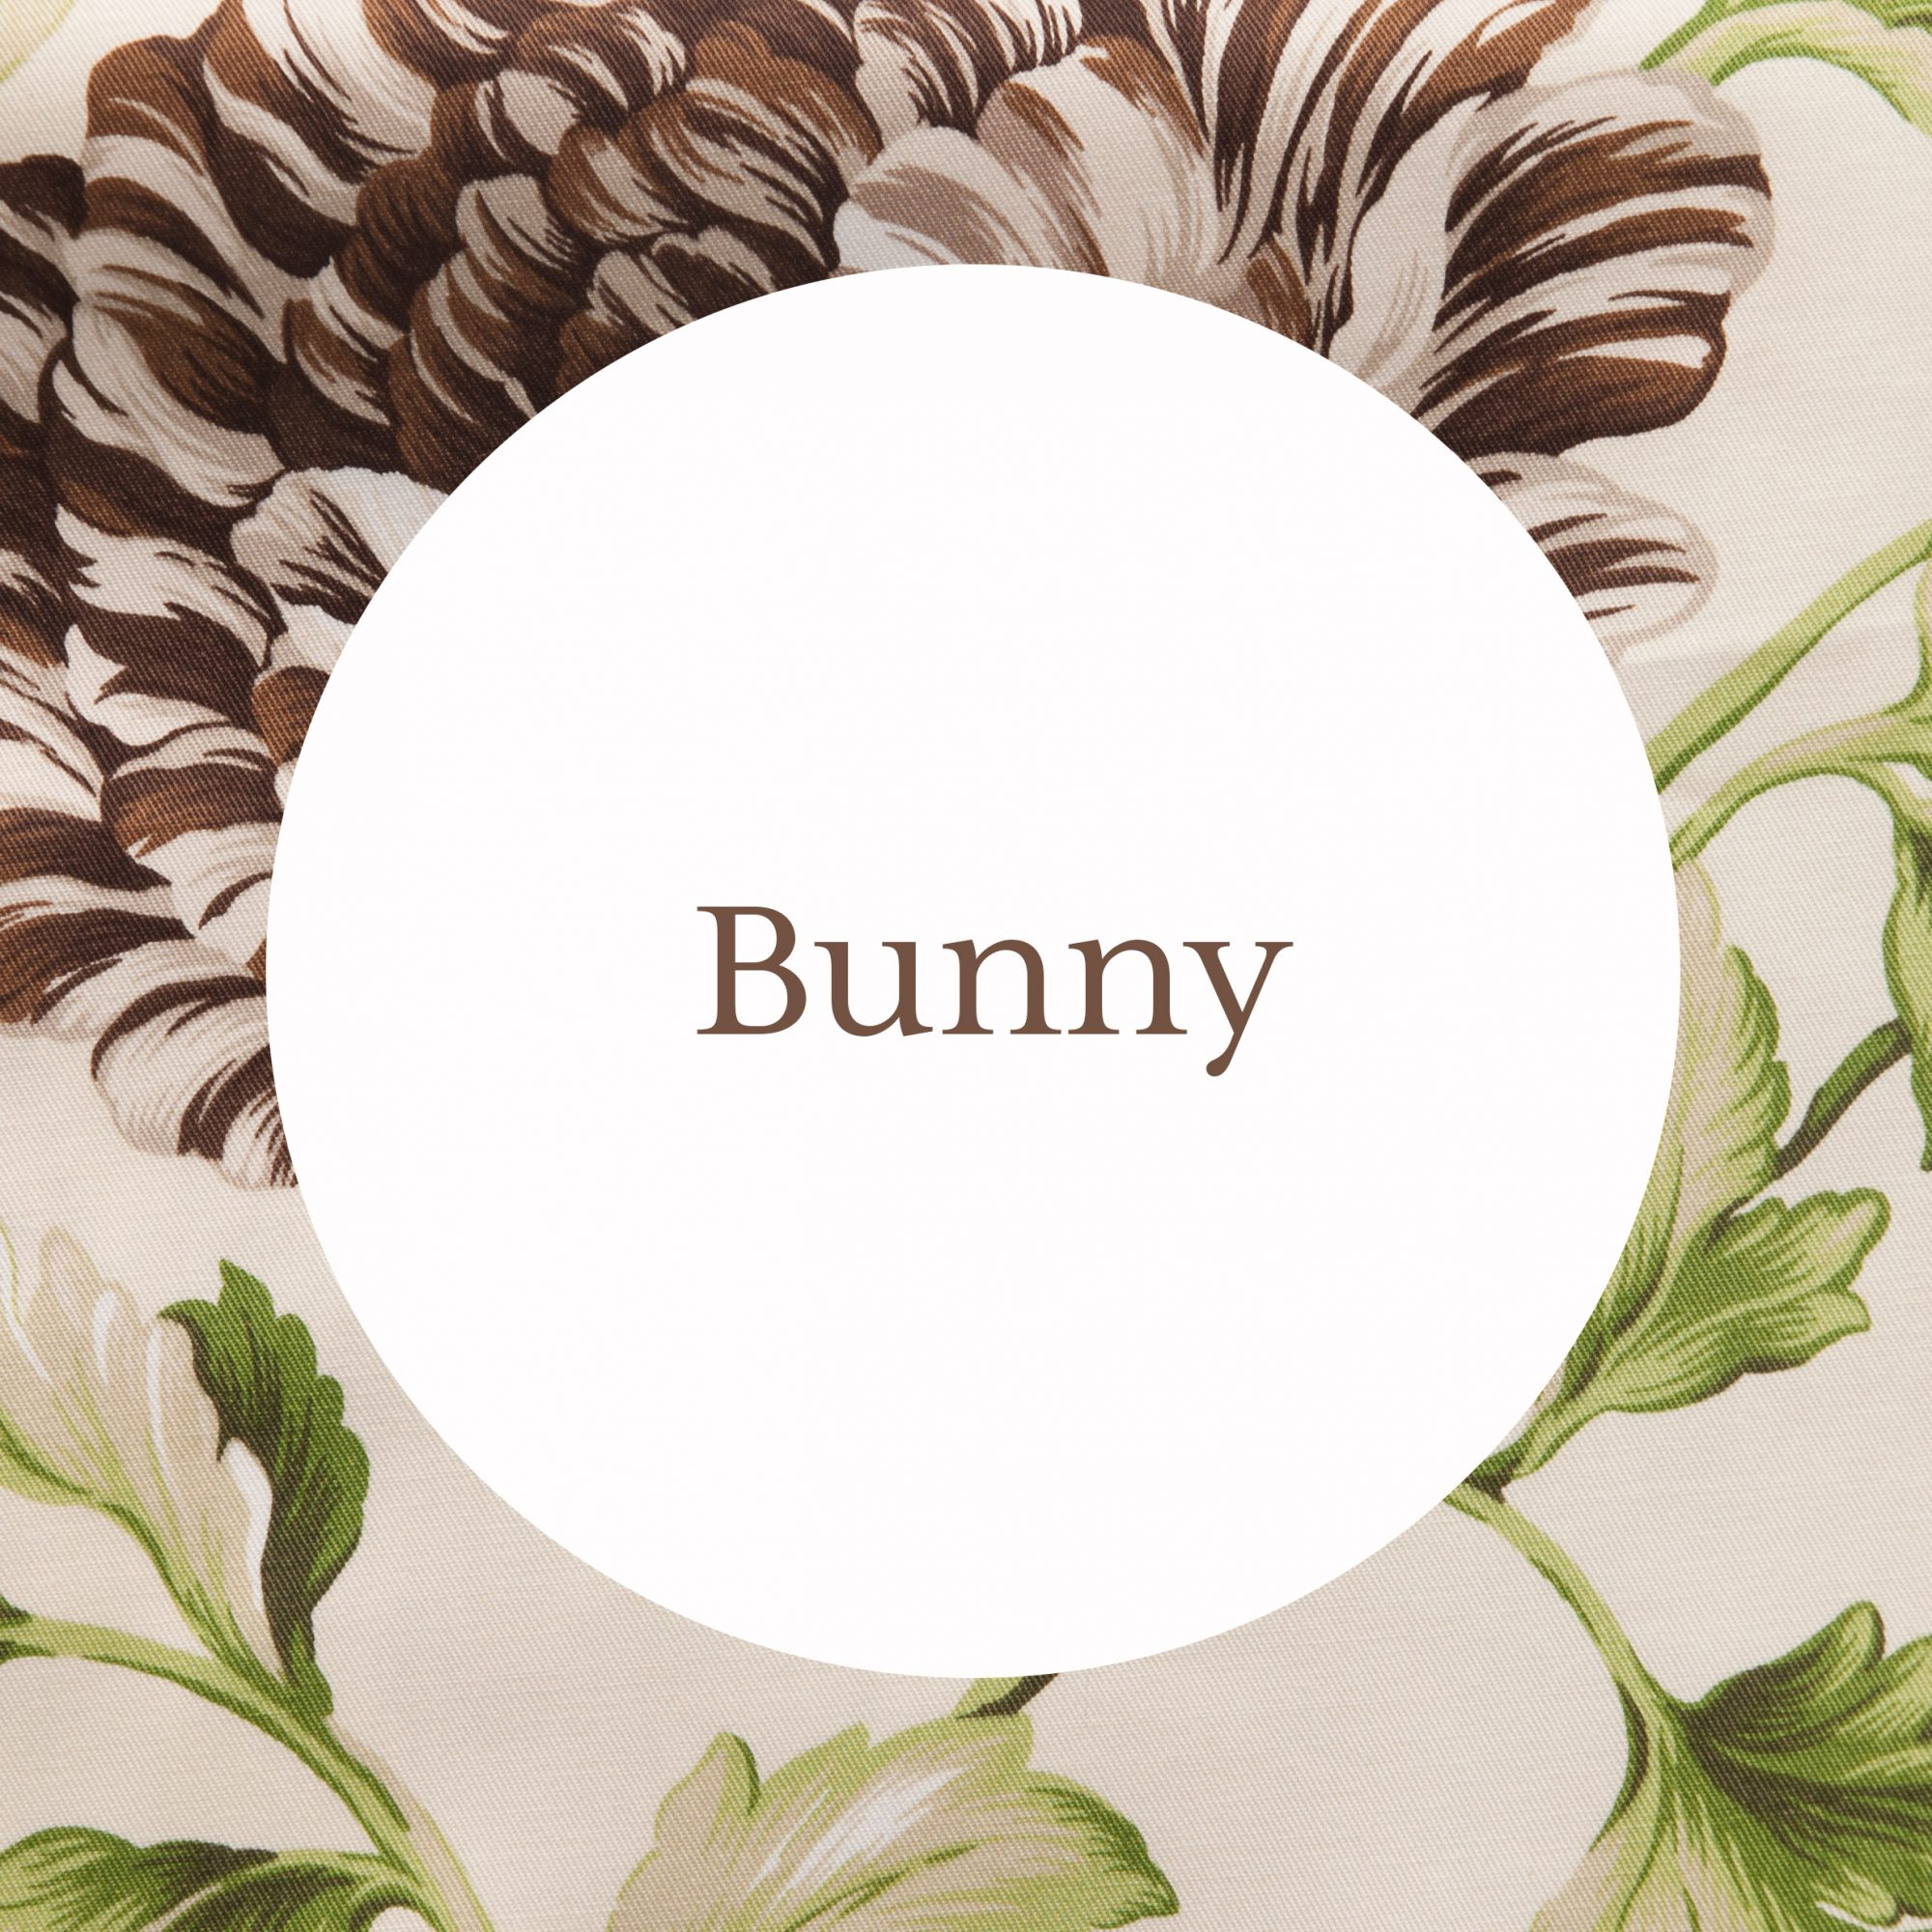 Bunny Grandmother Name